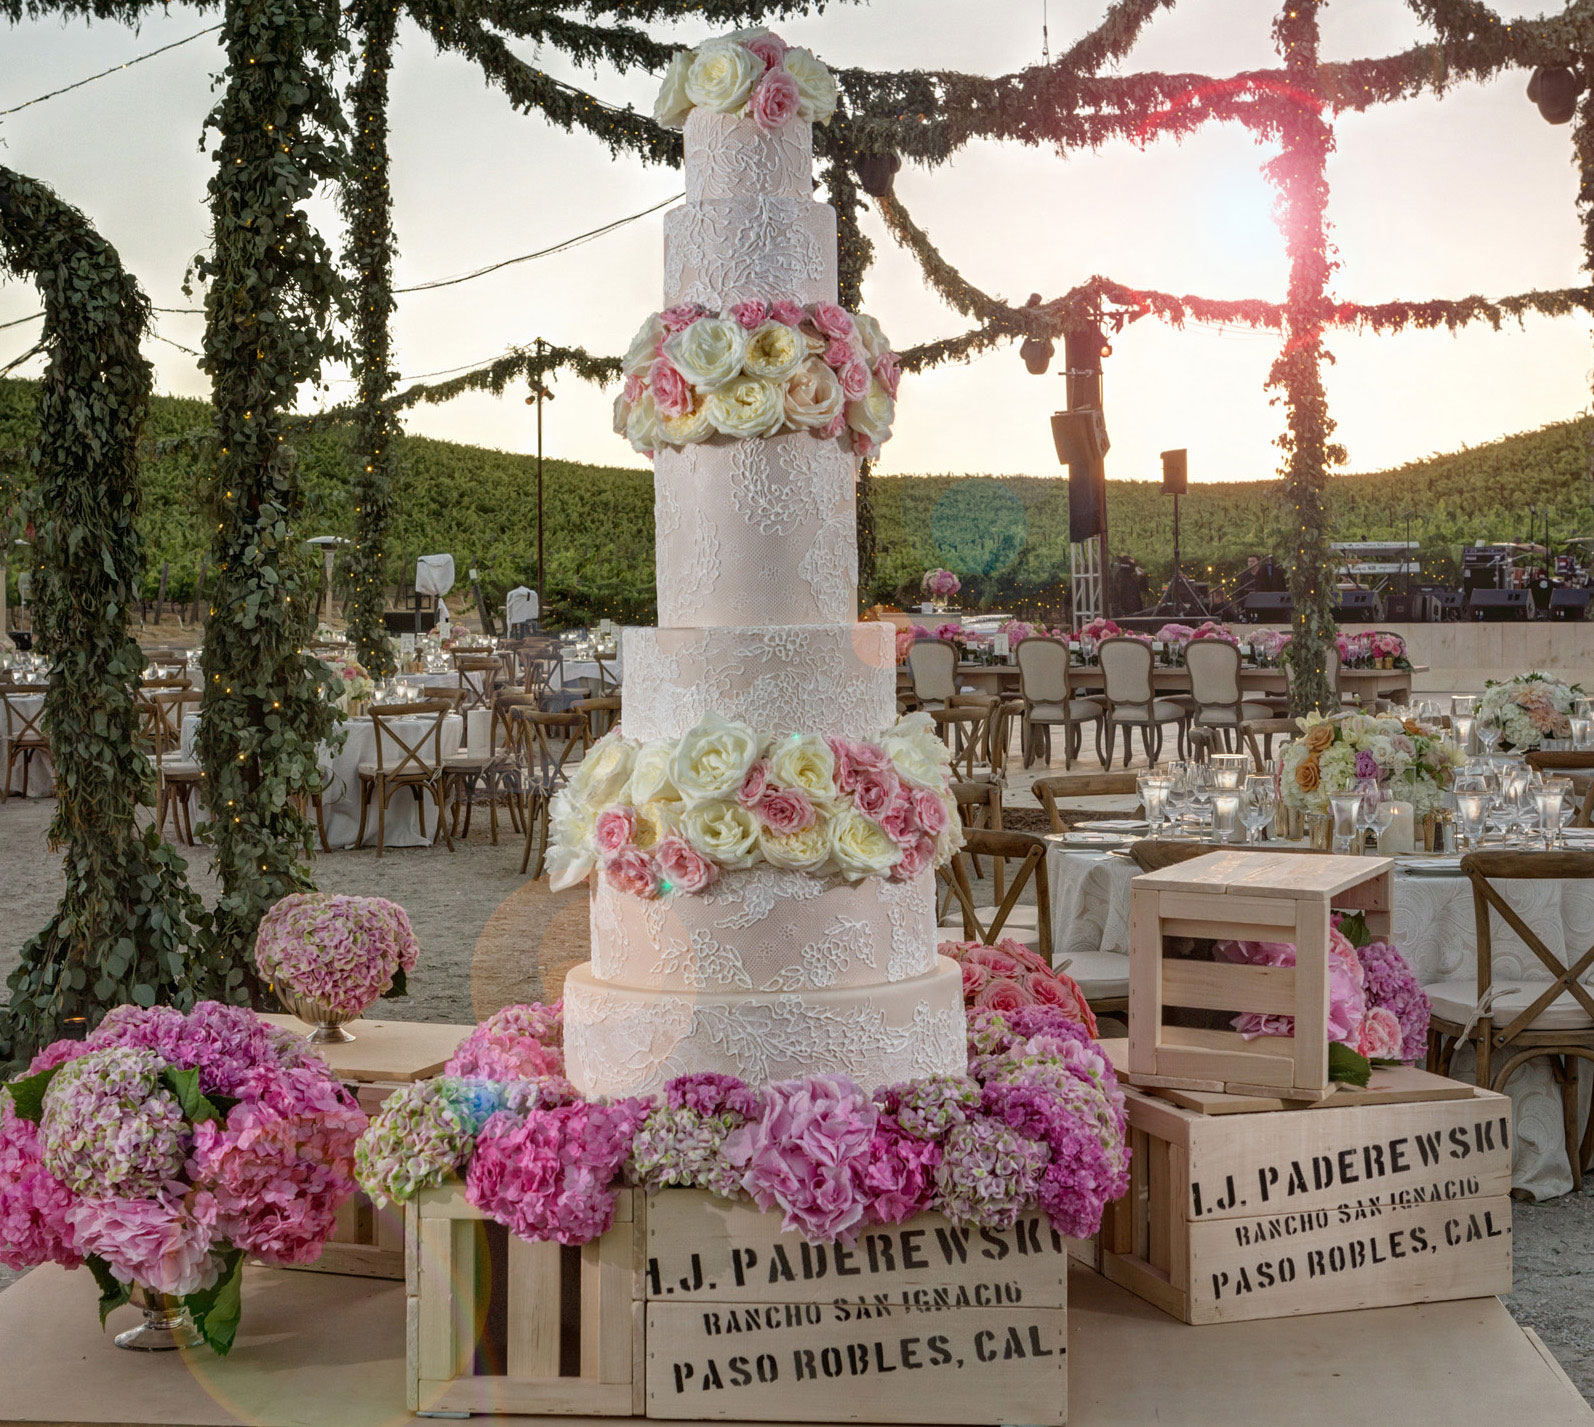 Pink wedding cake with fresh flower decorations